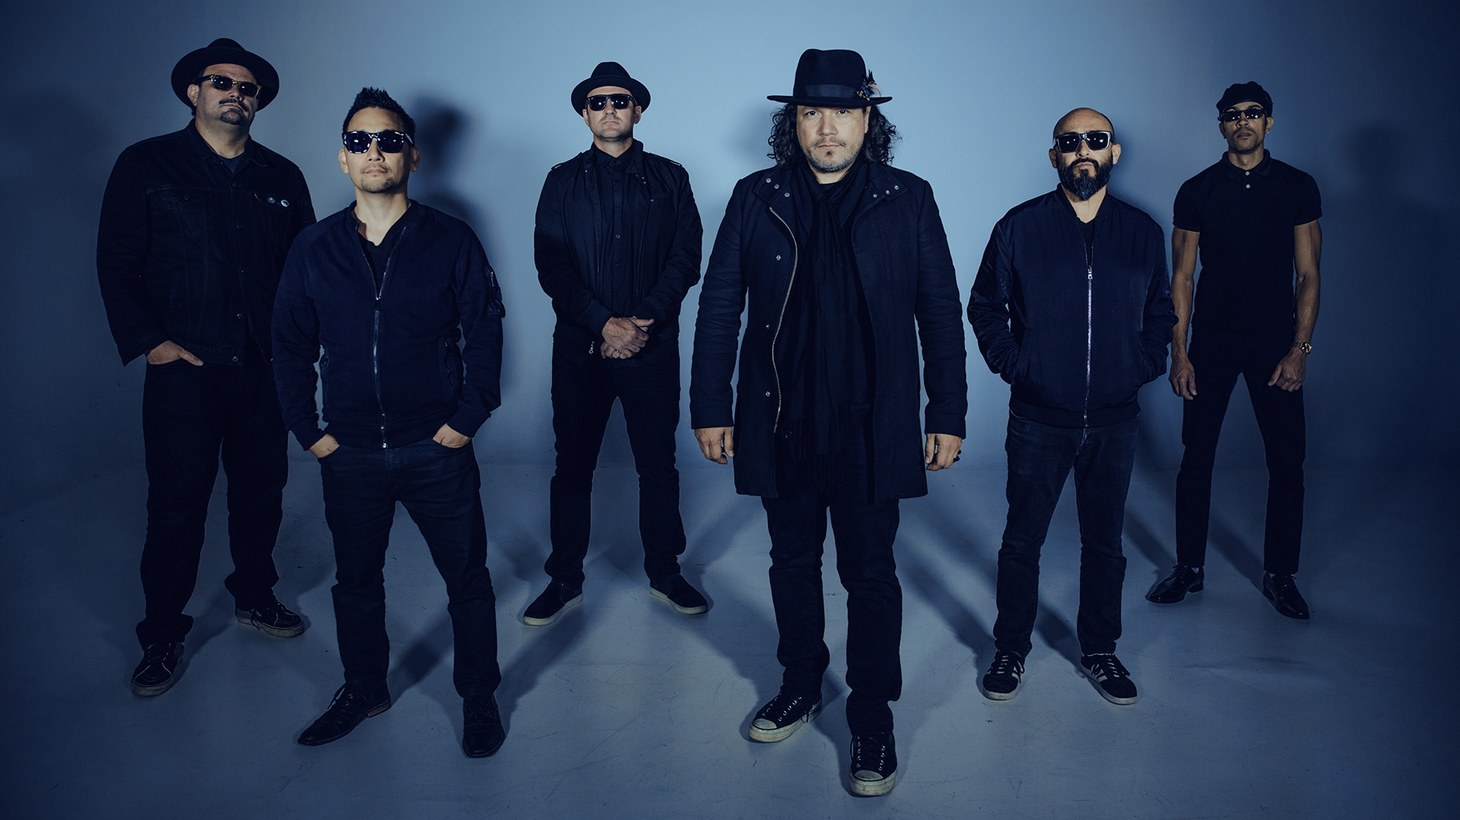 """KCRW's beloved two-time Grammy Award winners and hometown heroes Ozomatli have been busy working on a new album that drops today! Let's give """"Mi Destino,"""" featuring superb vocals by superstar Gaby Moreno and Cypress Hill's own B-Real, a spin."""